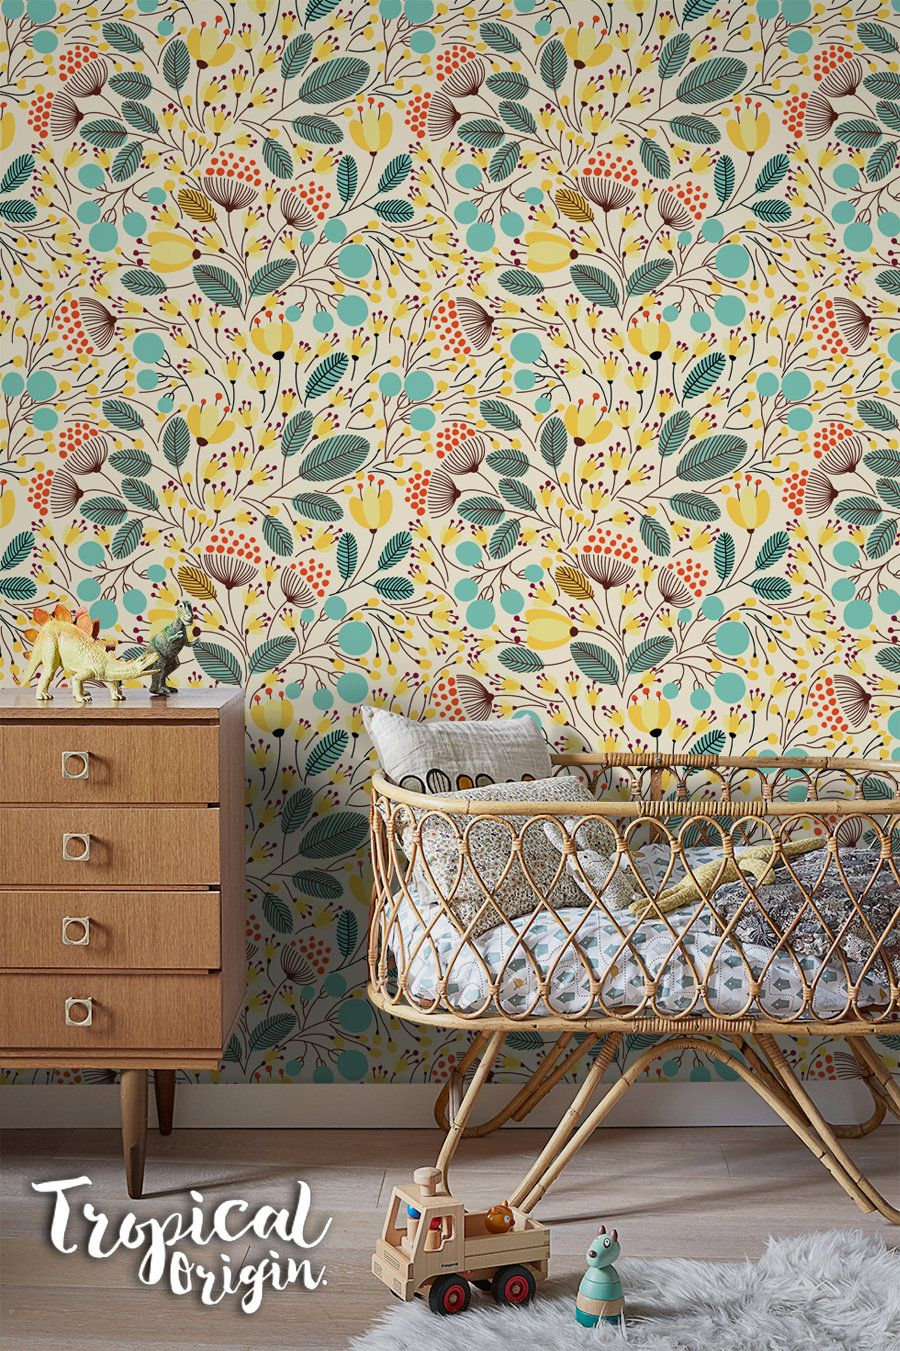 Yellow Spring Removable Wallpaper Nursery Wallpaper Etsy Removable Wallpaper Nursery Removable Wallpaper Nursery Wallpaper